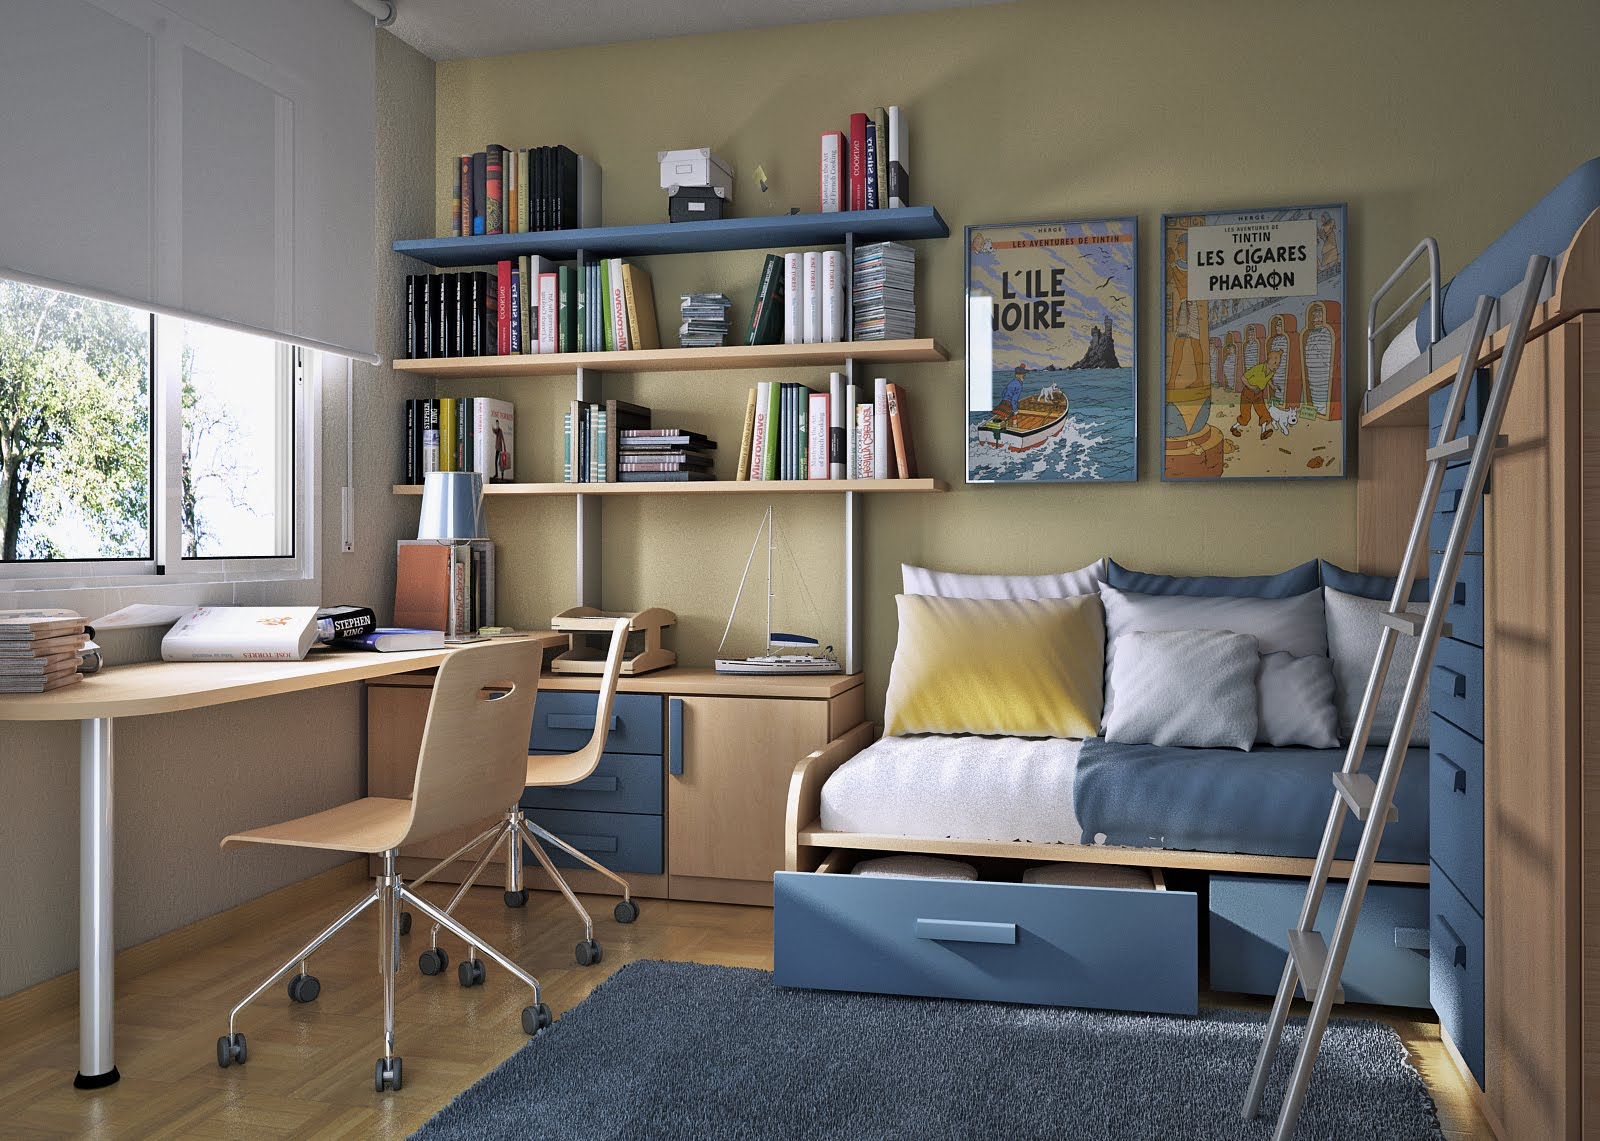 Small Floorspace Kids Rooms on Small Rooms  id=69602